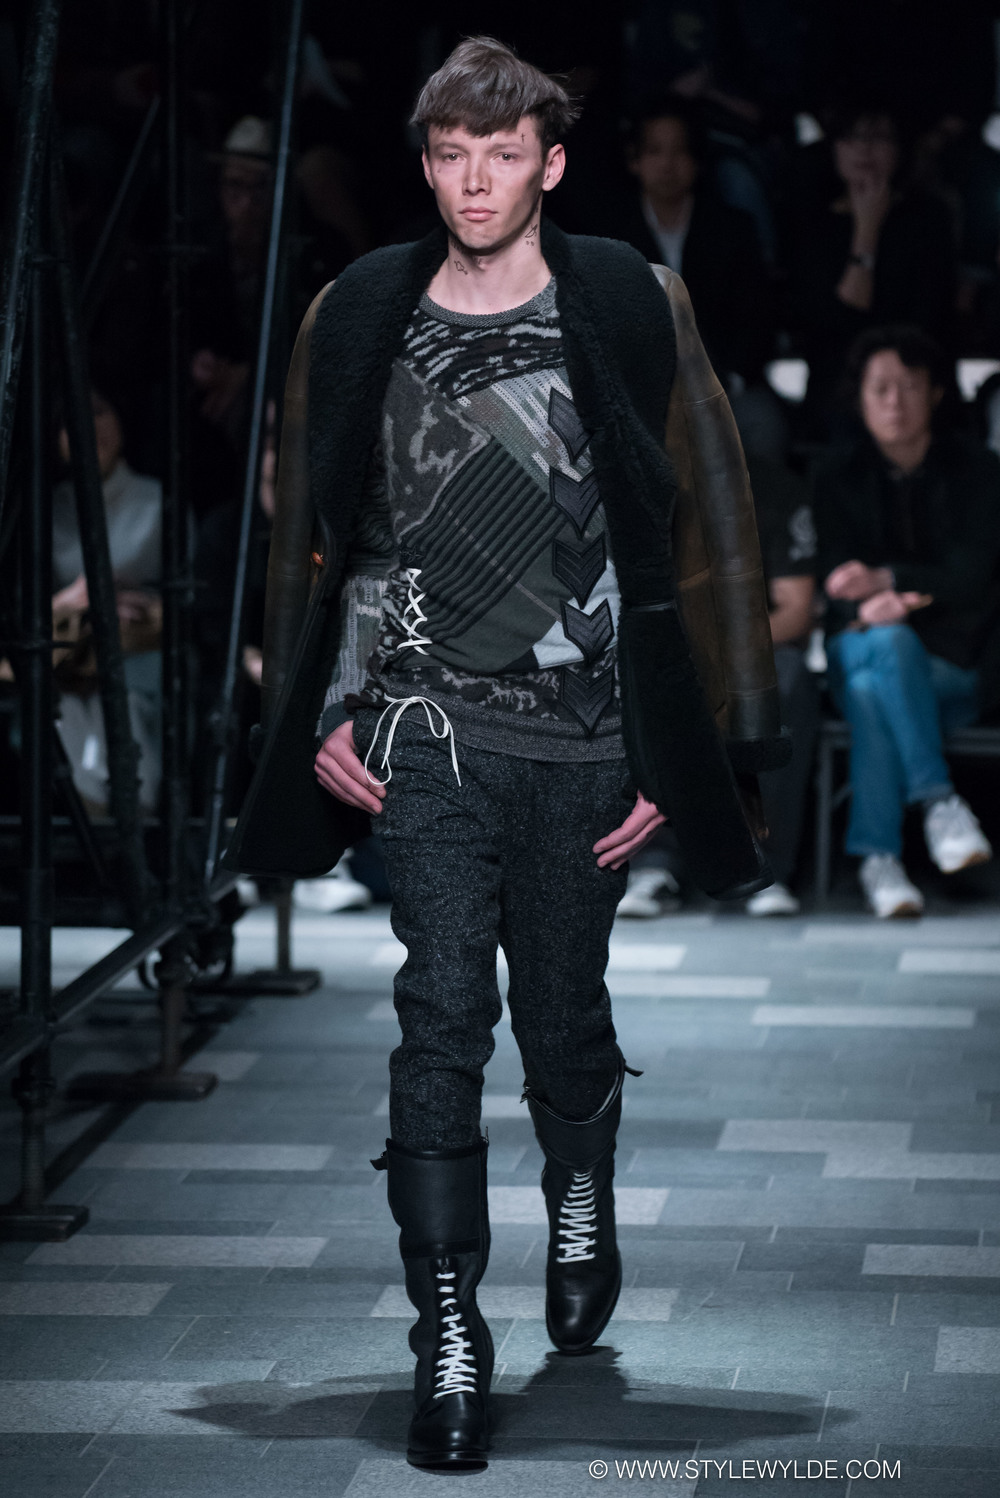 stylewylde_5351_pour_les_hommes_fw_2016-14.jpg